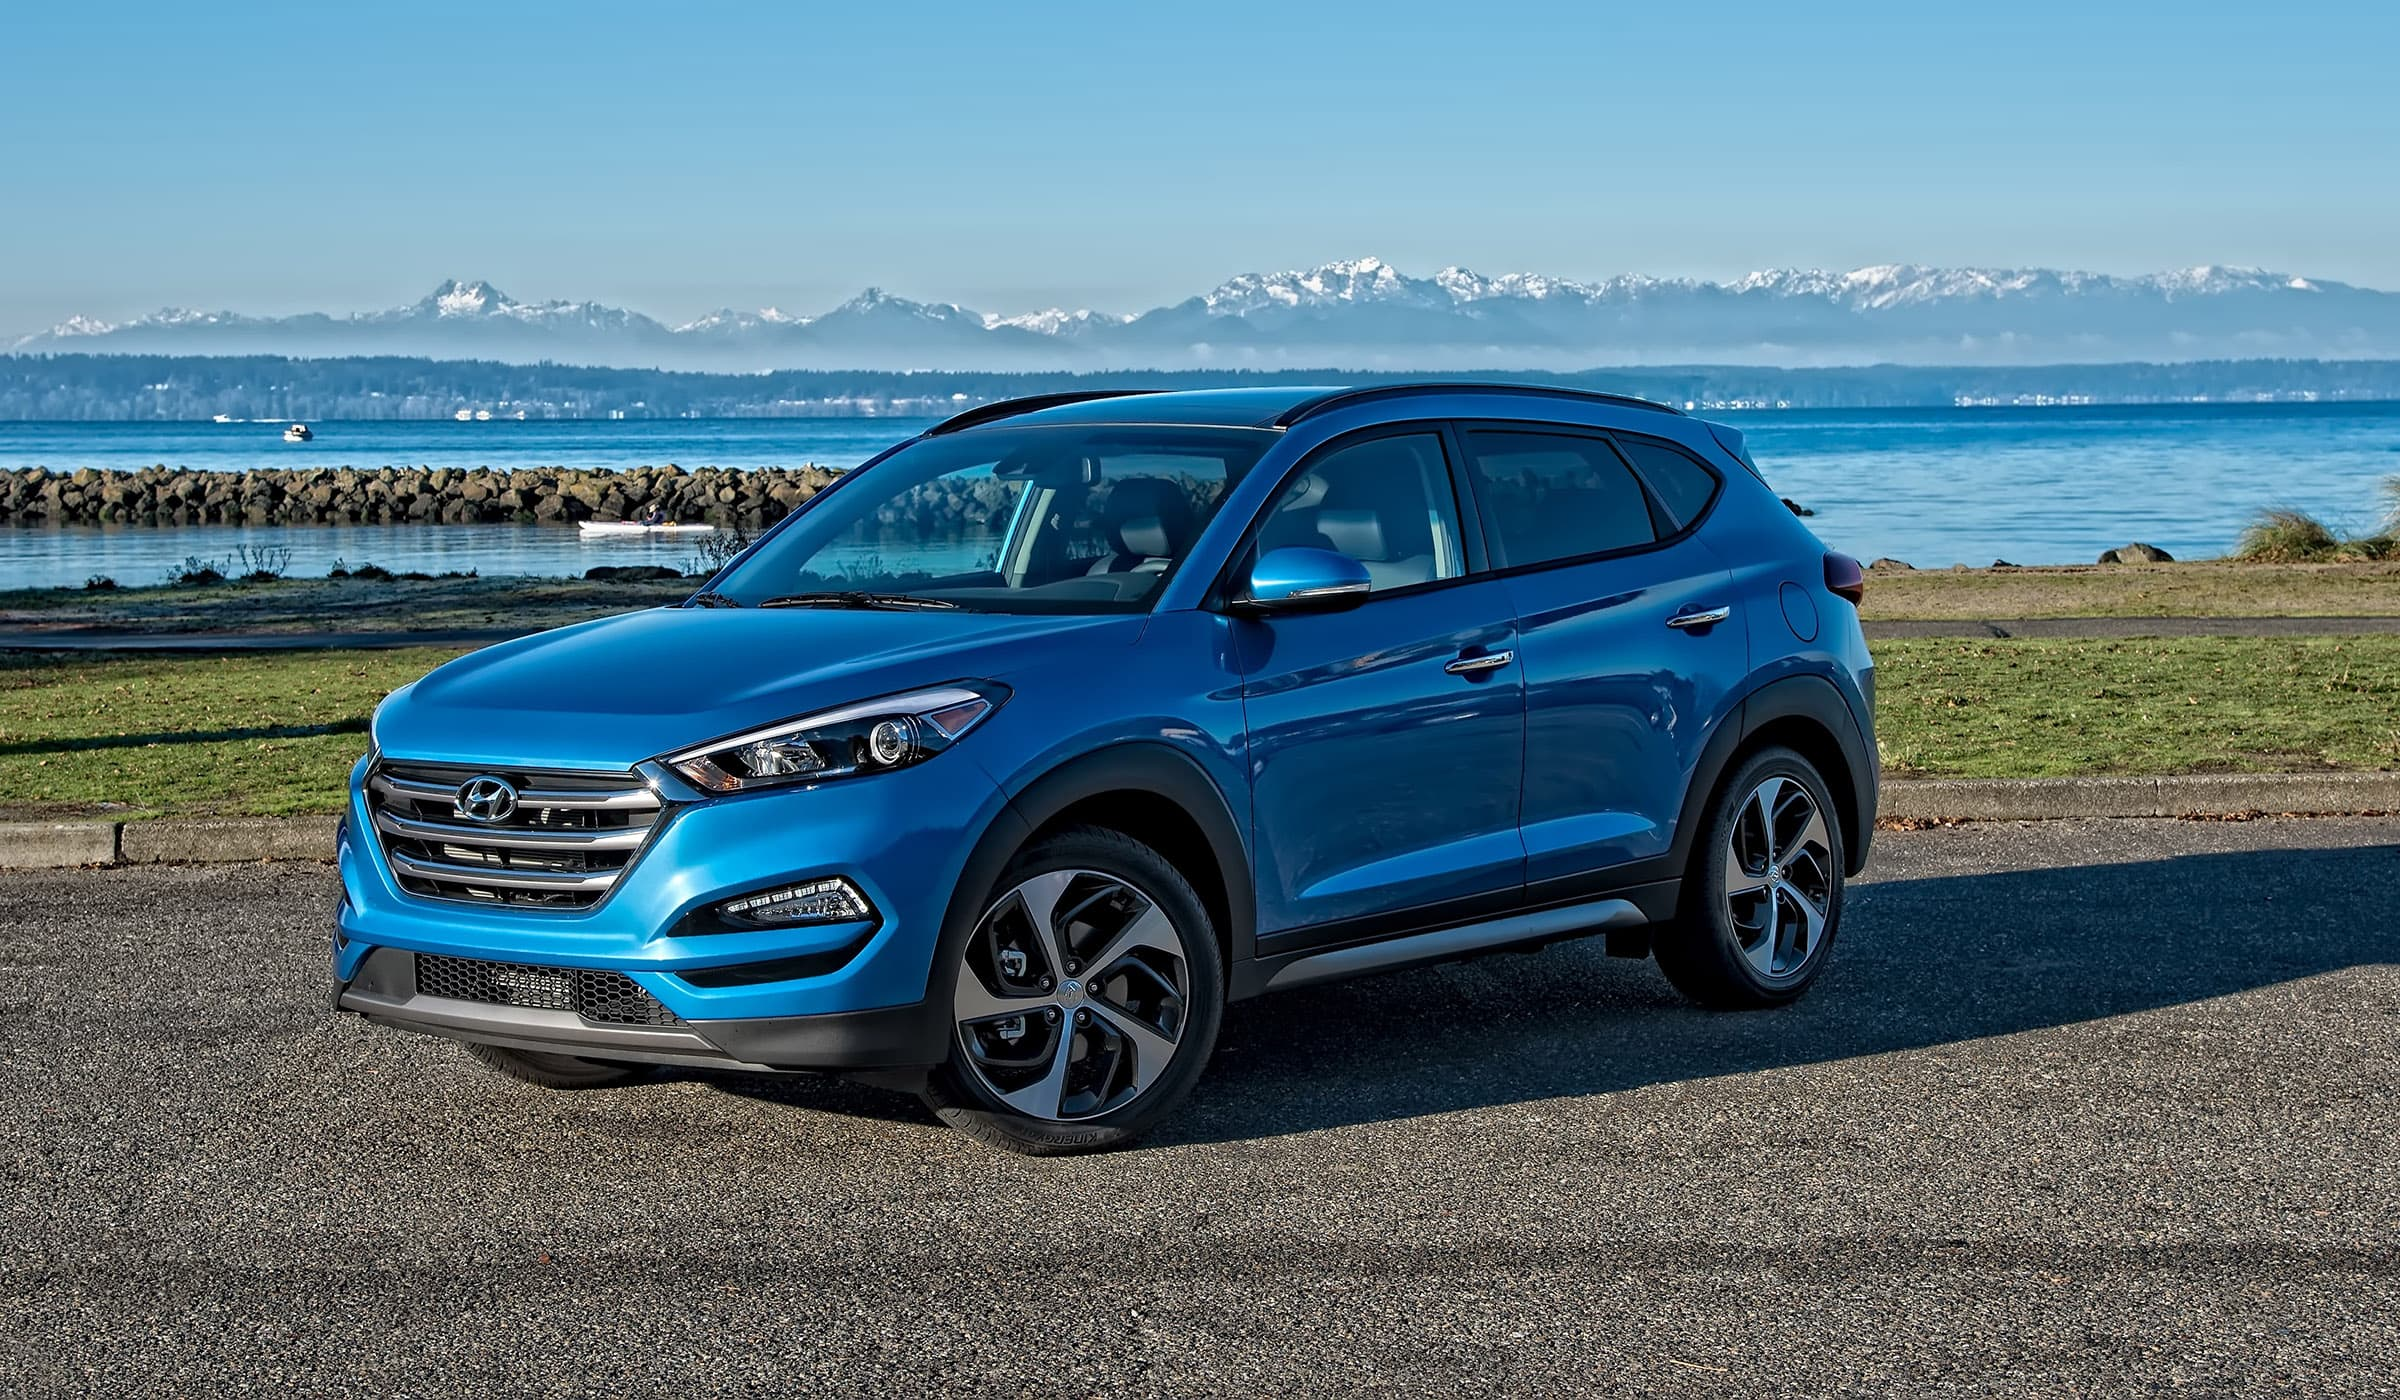 Hd Hyundai Tucson Blue Wallpapers High Quality on 2016 Buick Enclave